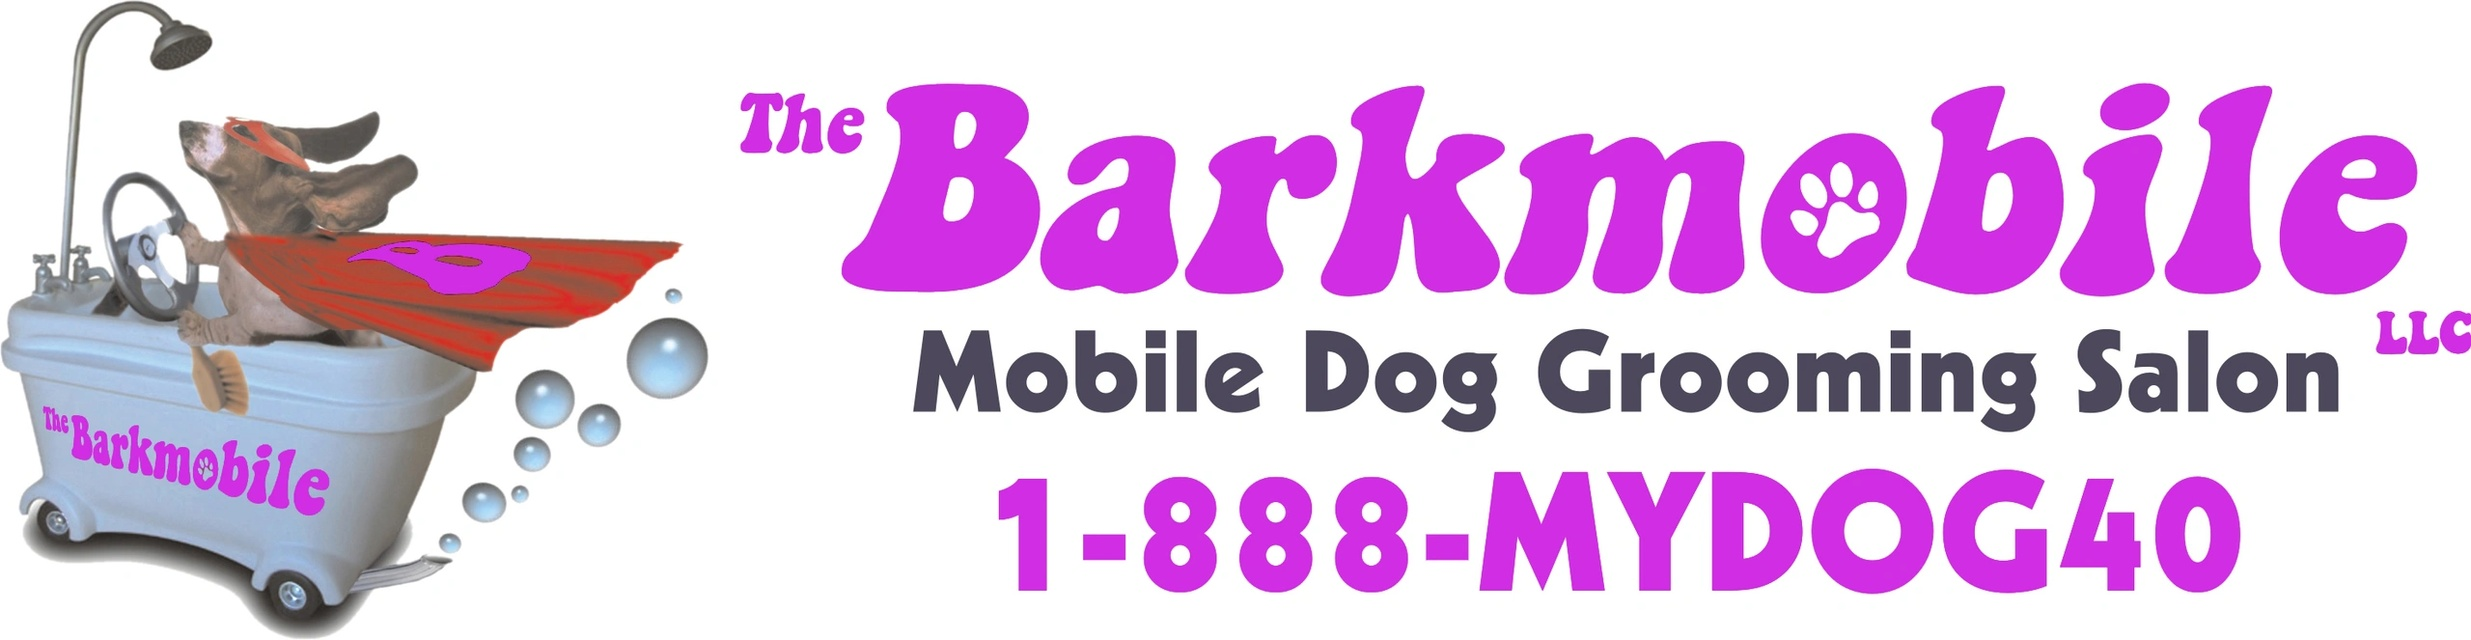 The Barkmobile Mobile Dog Grooming